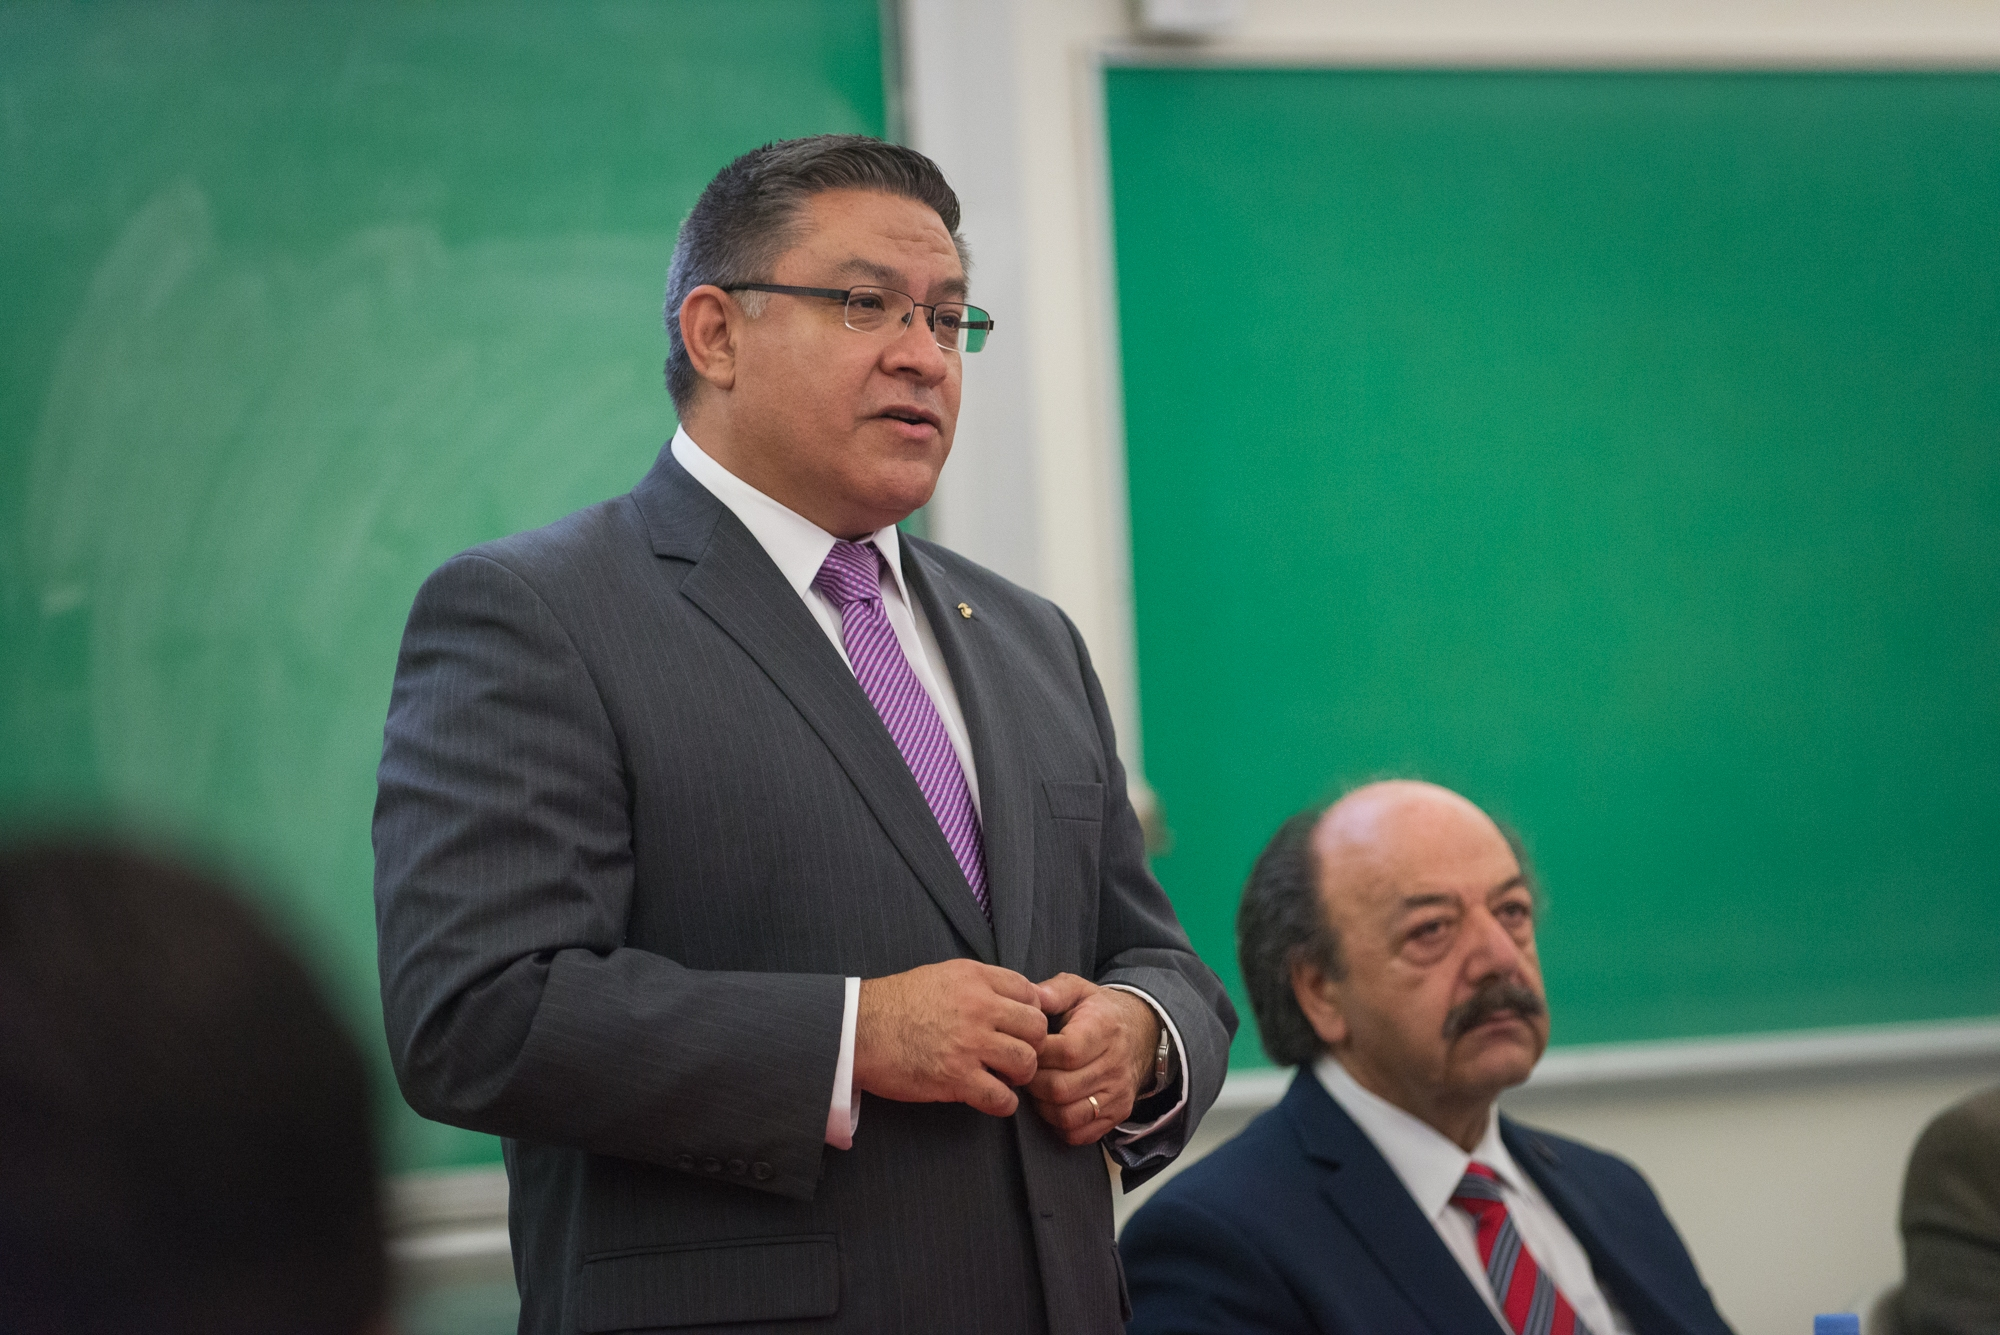 Lorenzo Basilio / Daily Nexus Democrat Salud Carbajal currently serves on the Santa Barbara County Board of Supervisors and has been endorsed by Lois Capps. He said he will push for greater accessibility to higher education.